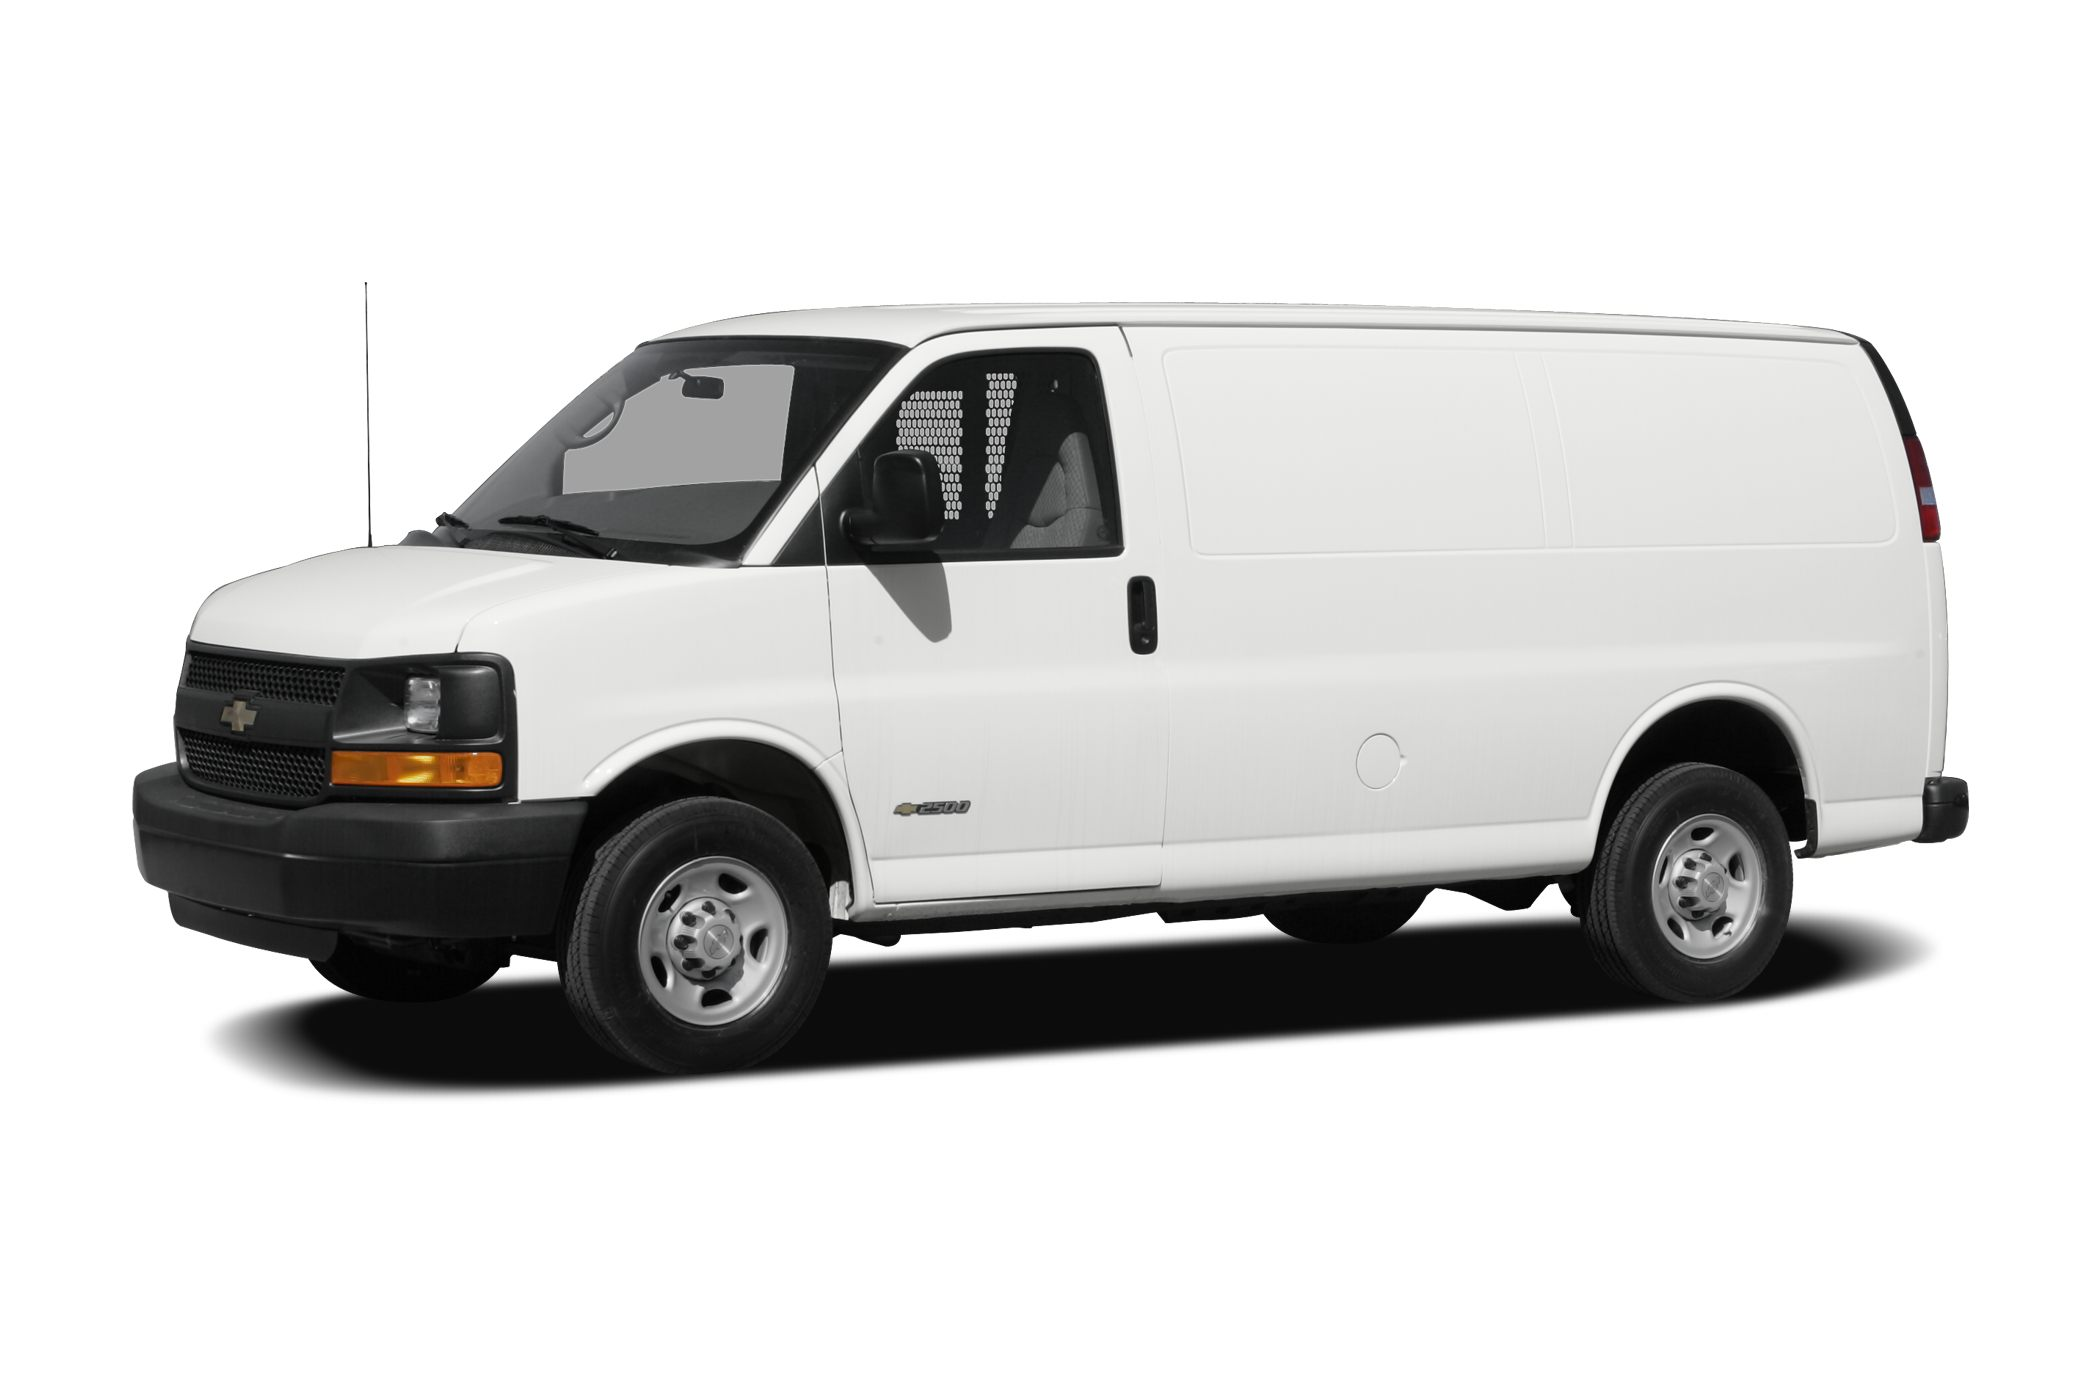 2012 Chevrolet Express 1500 Work Van Cargo Van for sale in Omaha for $15,995 with 52,641 miles.